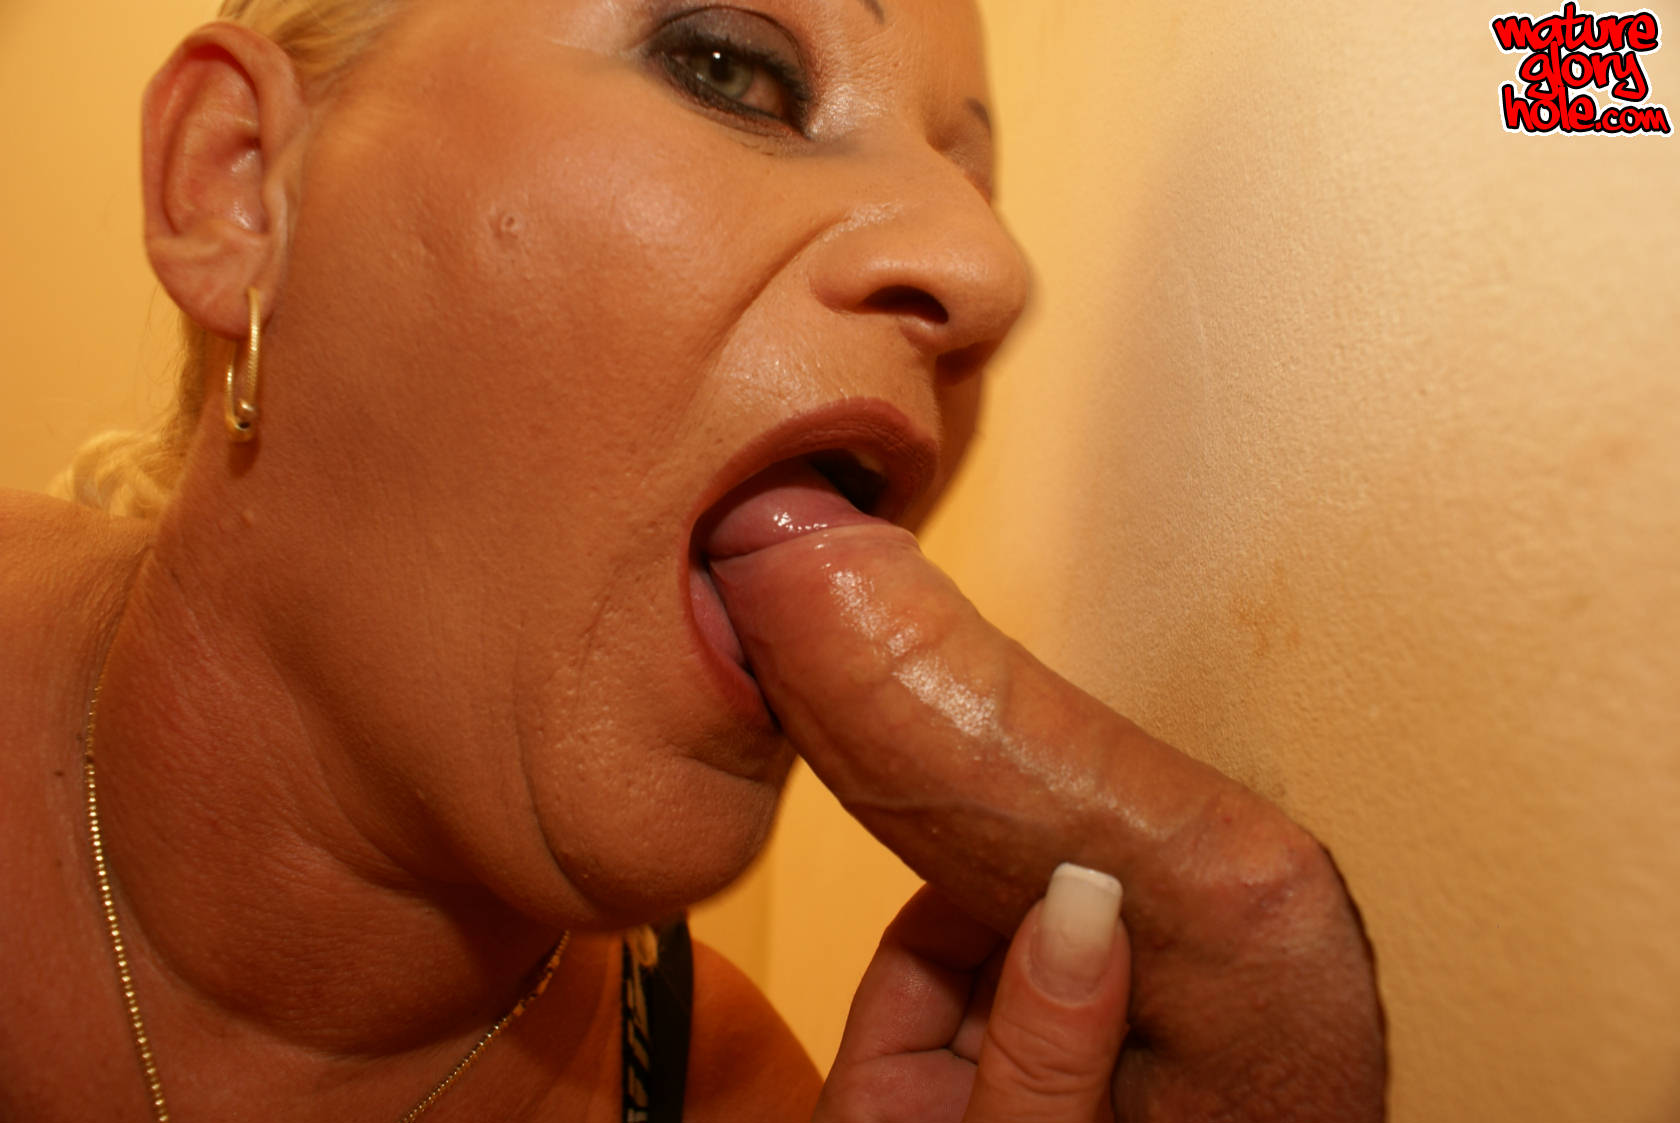 Busty Mom gets a big cock surprise through a hole in a toilet